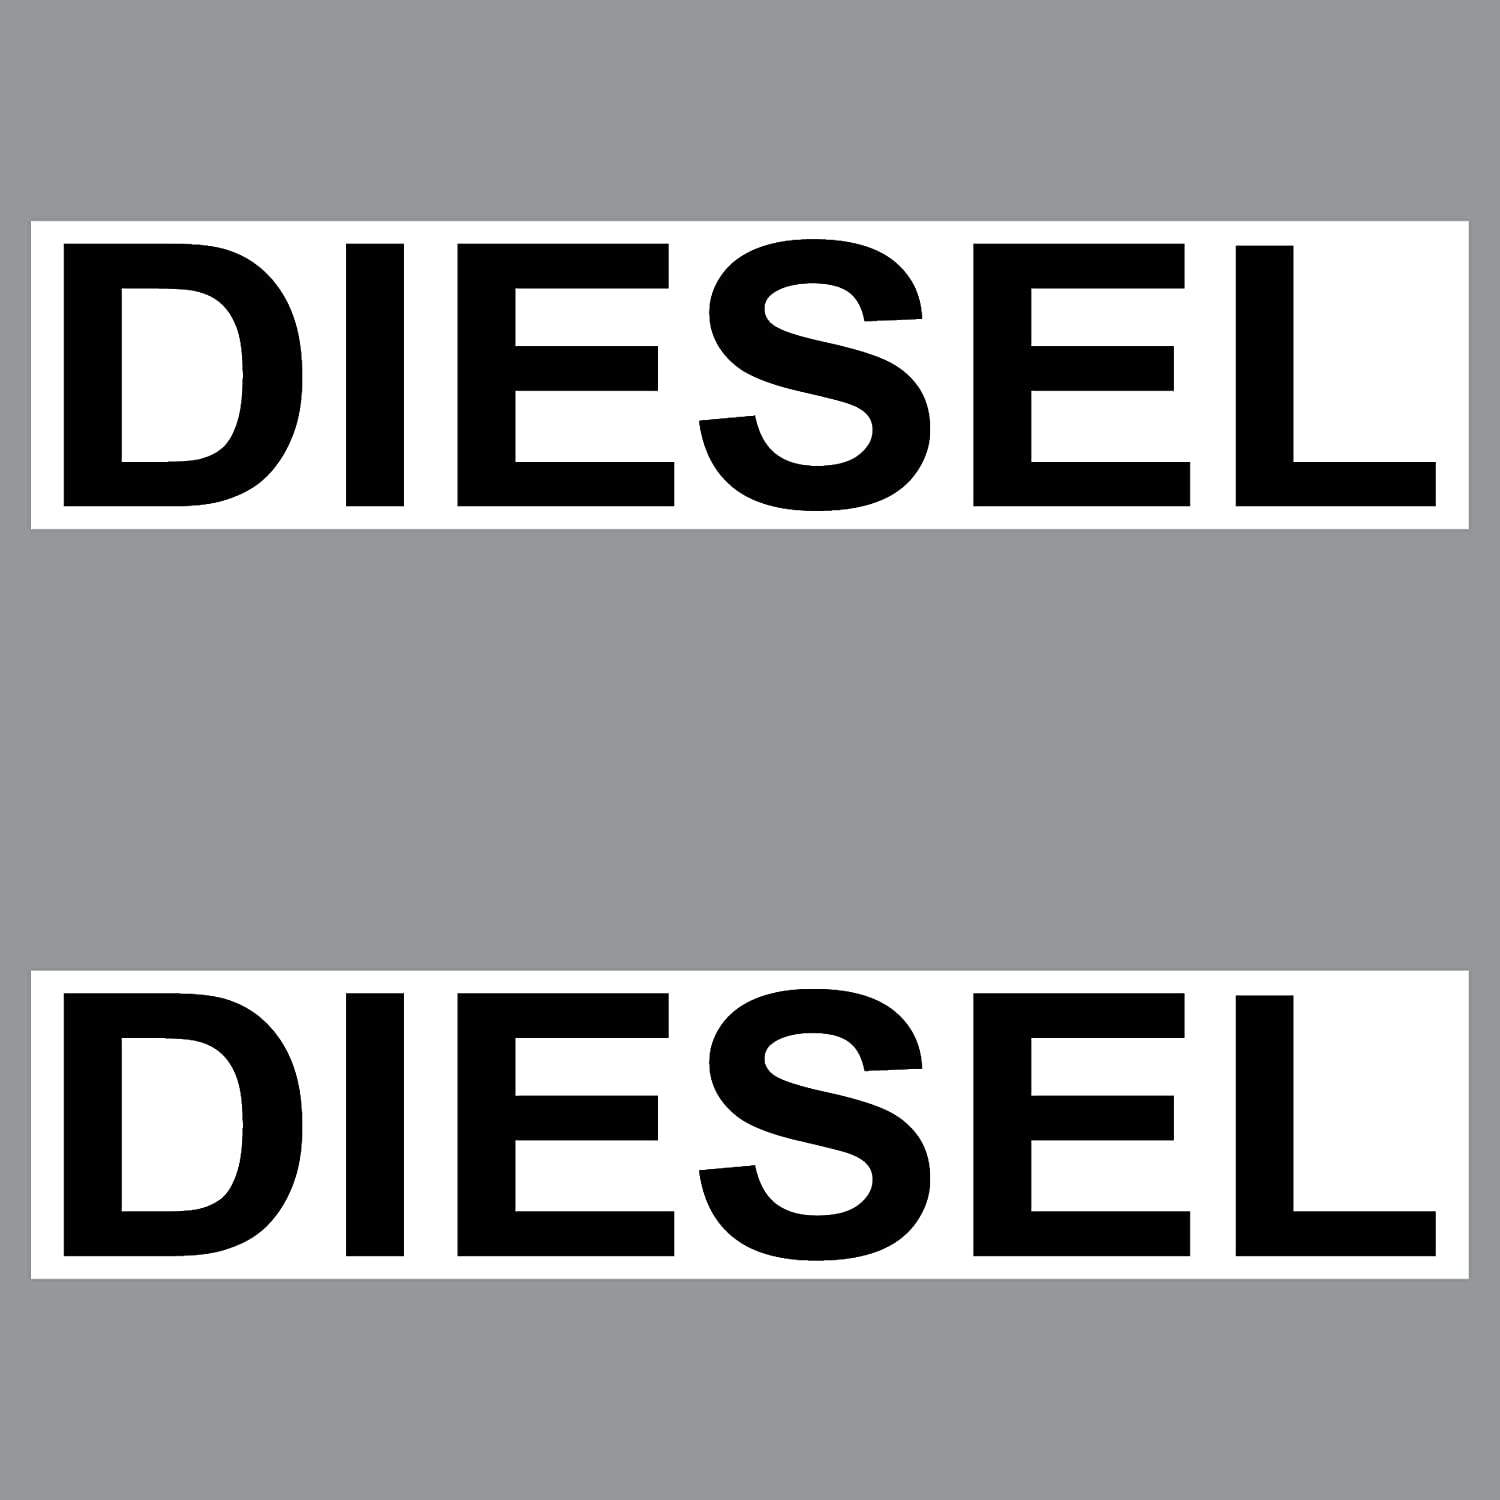 2  autocollants Stickers Diesel PVC 20  cm plaque signalé tique pour vé hicule Bidon essence Ré servoir de carburant GreenIT